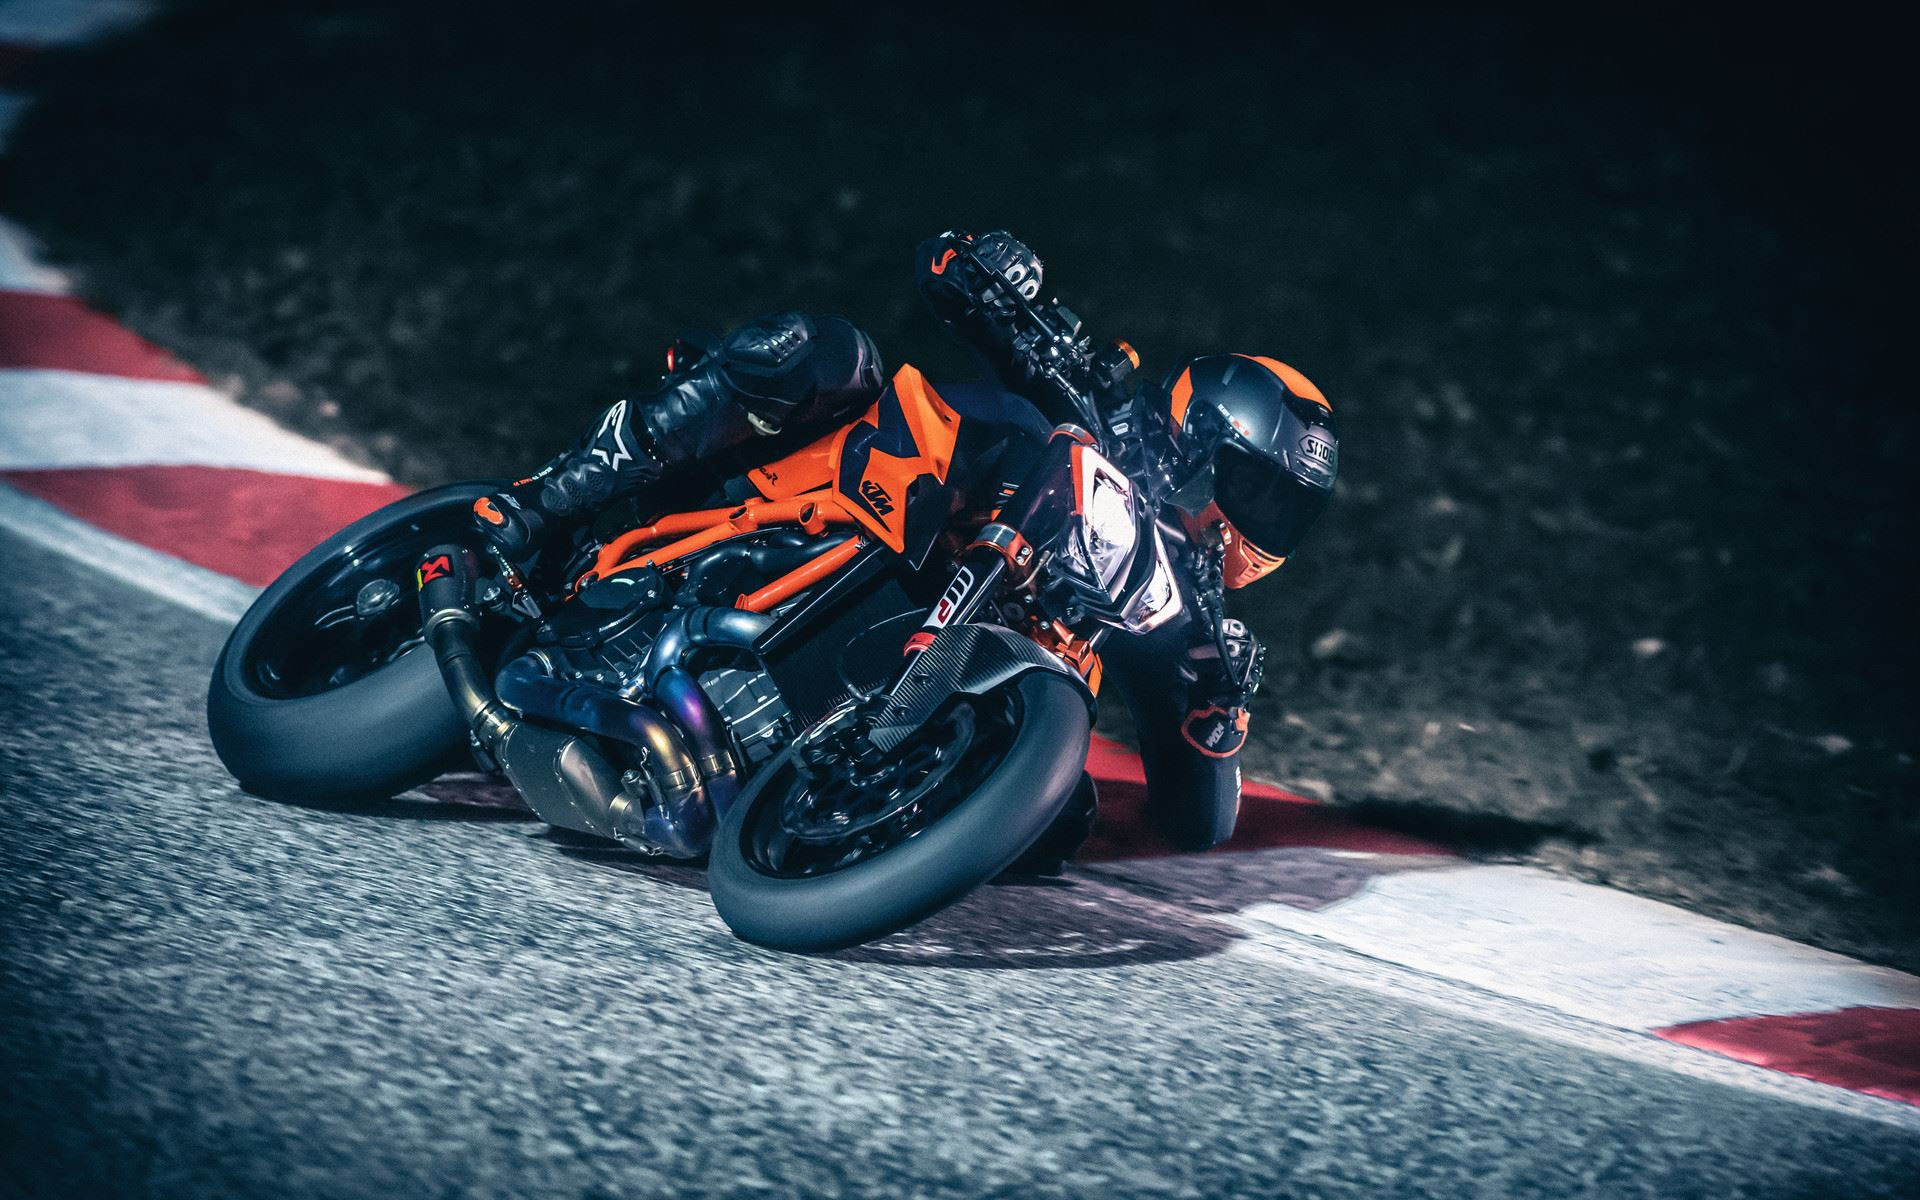 A 2020-model KTM 1290 Super Duke R at speed. Photo courtesy of KTM.